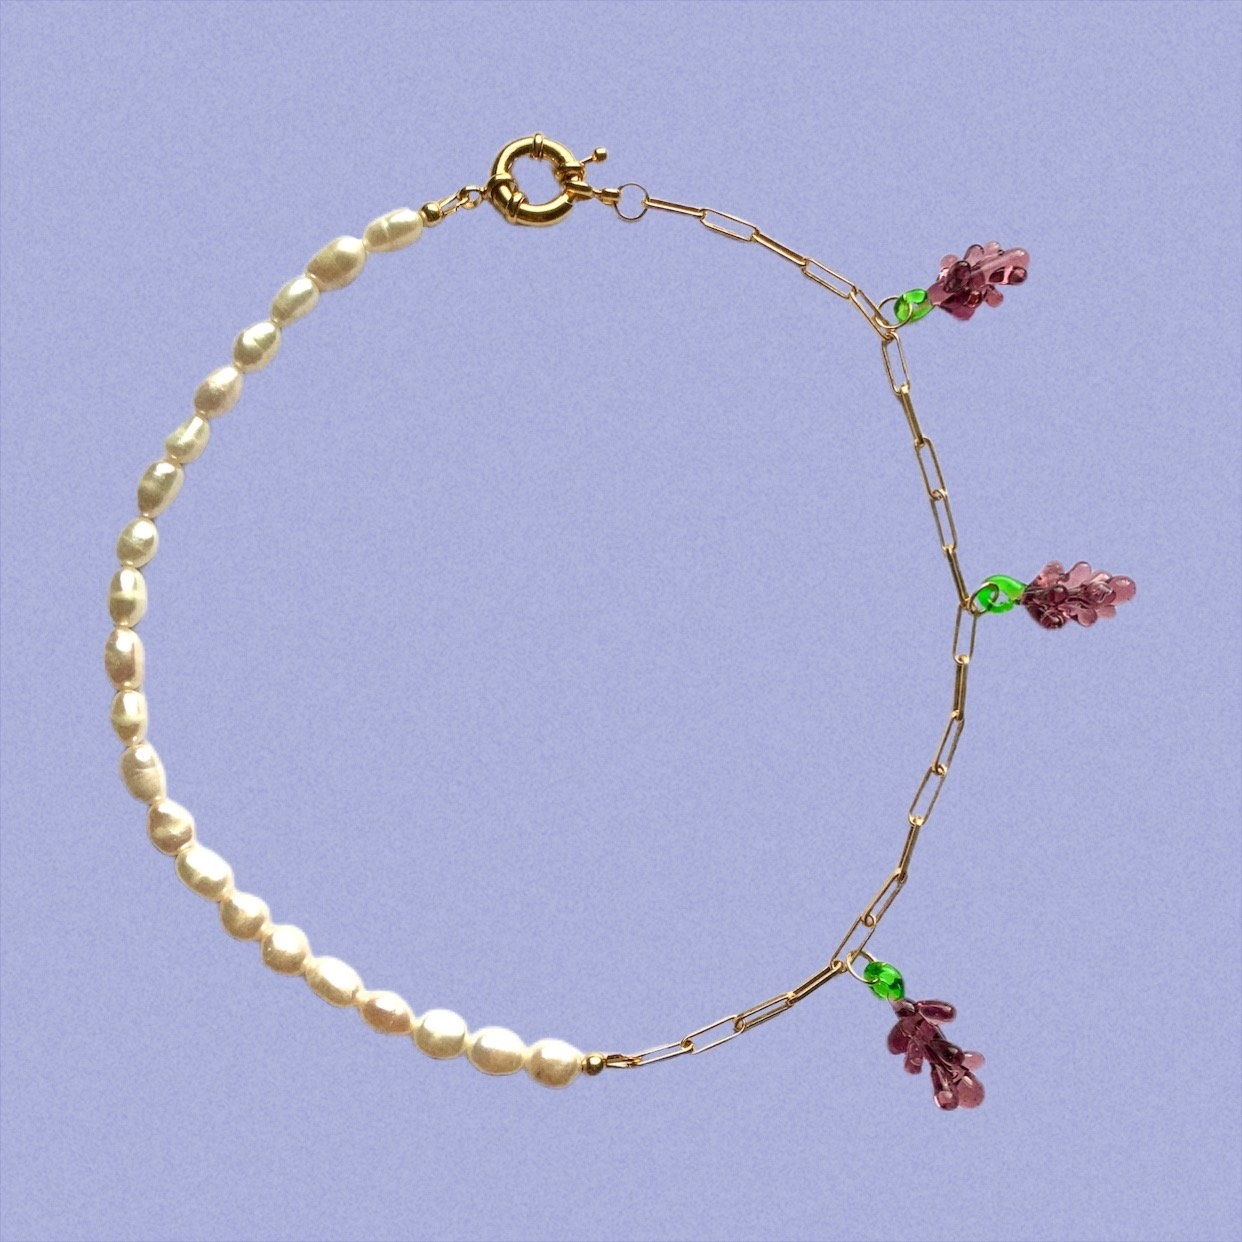 Pino Necklace